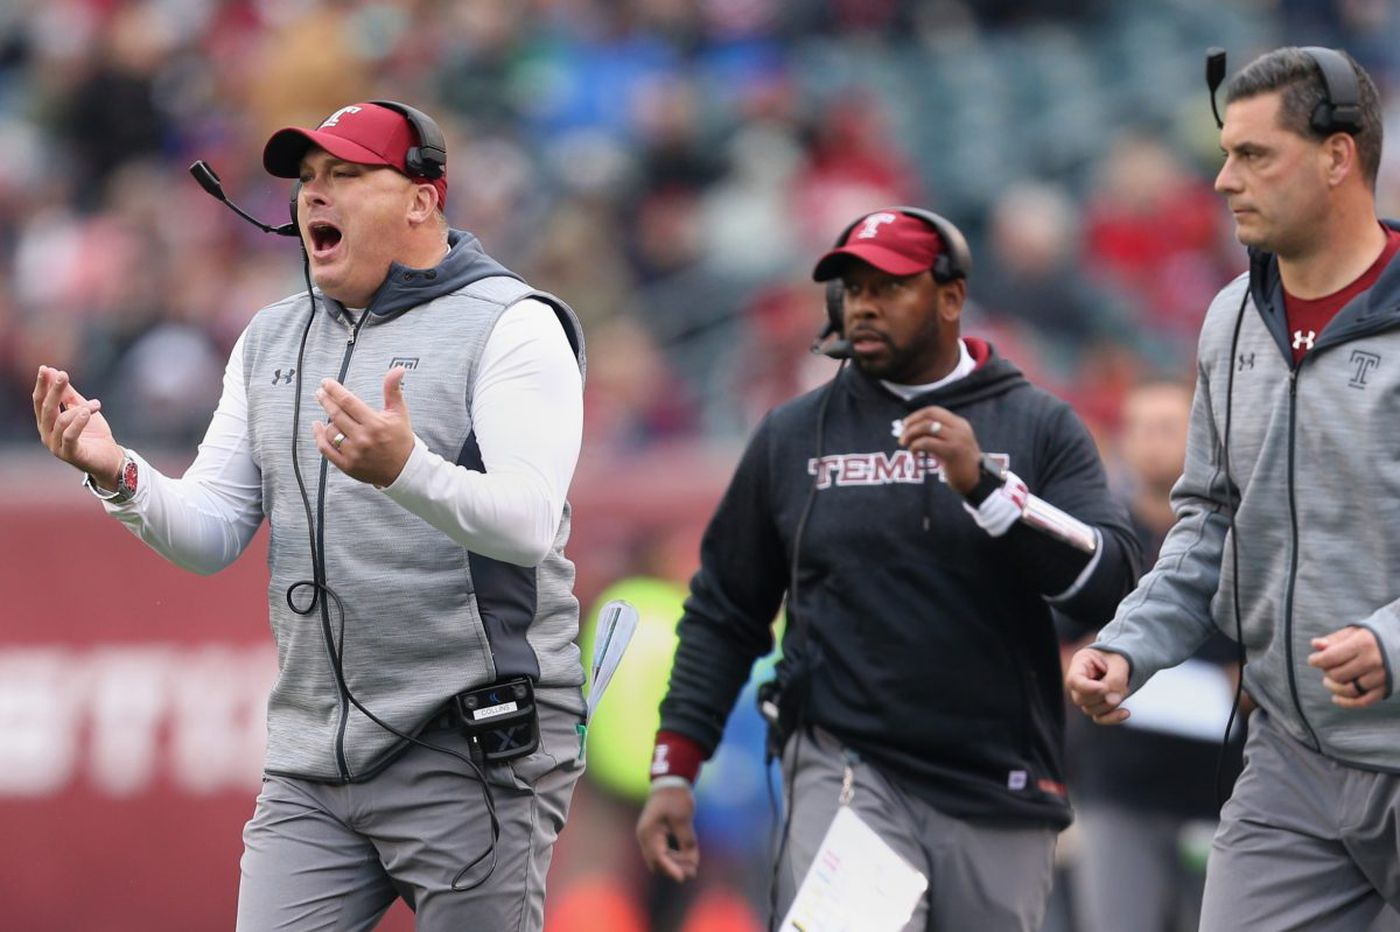 Temple coach Geoff Collins meets a second time with Georgia Tech about its coaching job